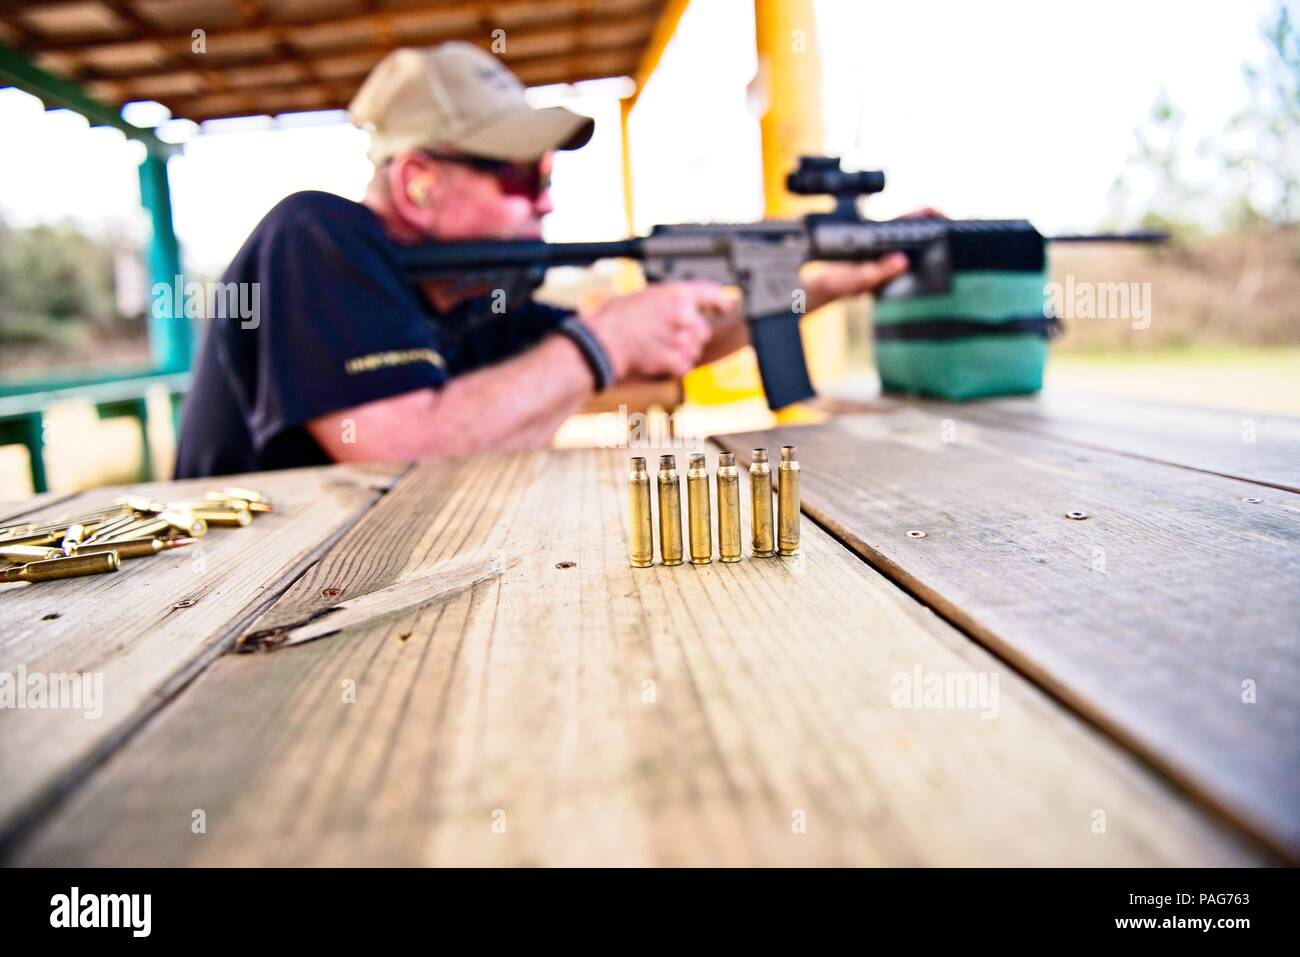 A row of spent rifle cartridges are isolated with a main looking through the scope of a rifle is in the background - Stock Image